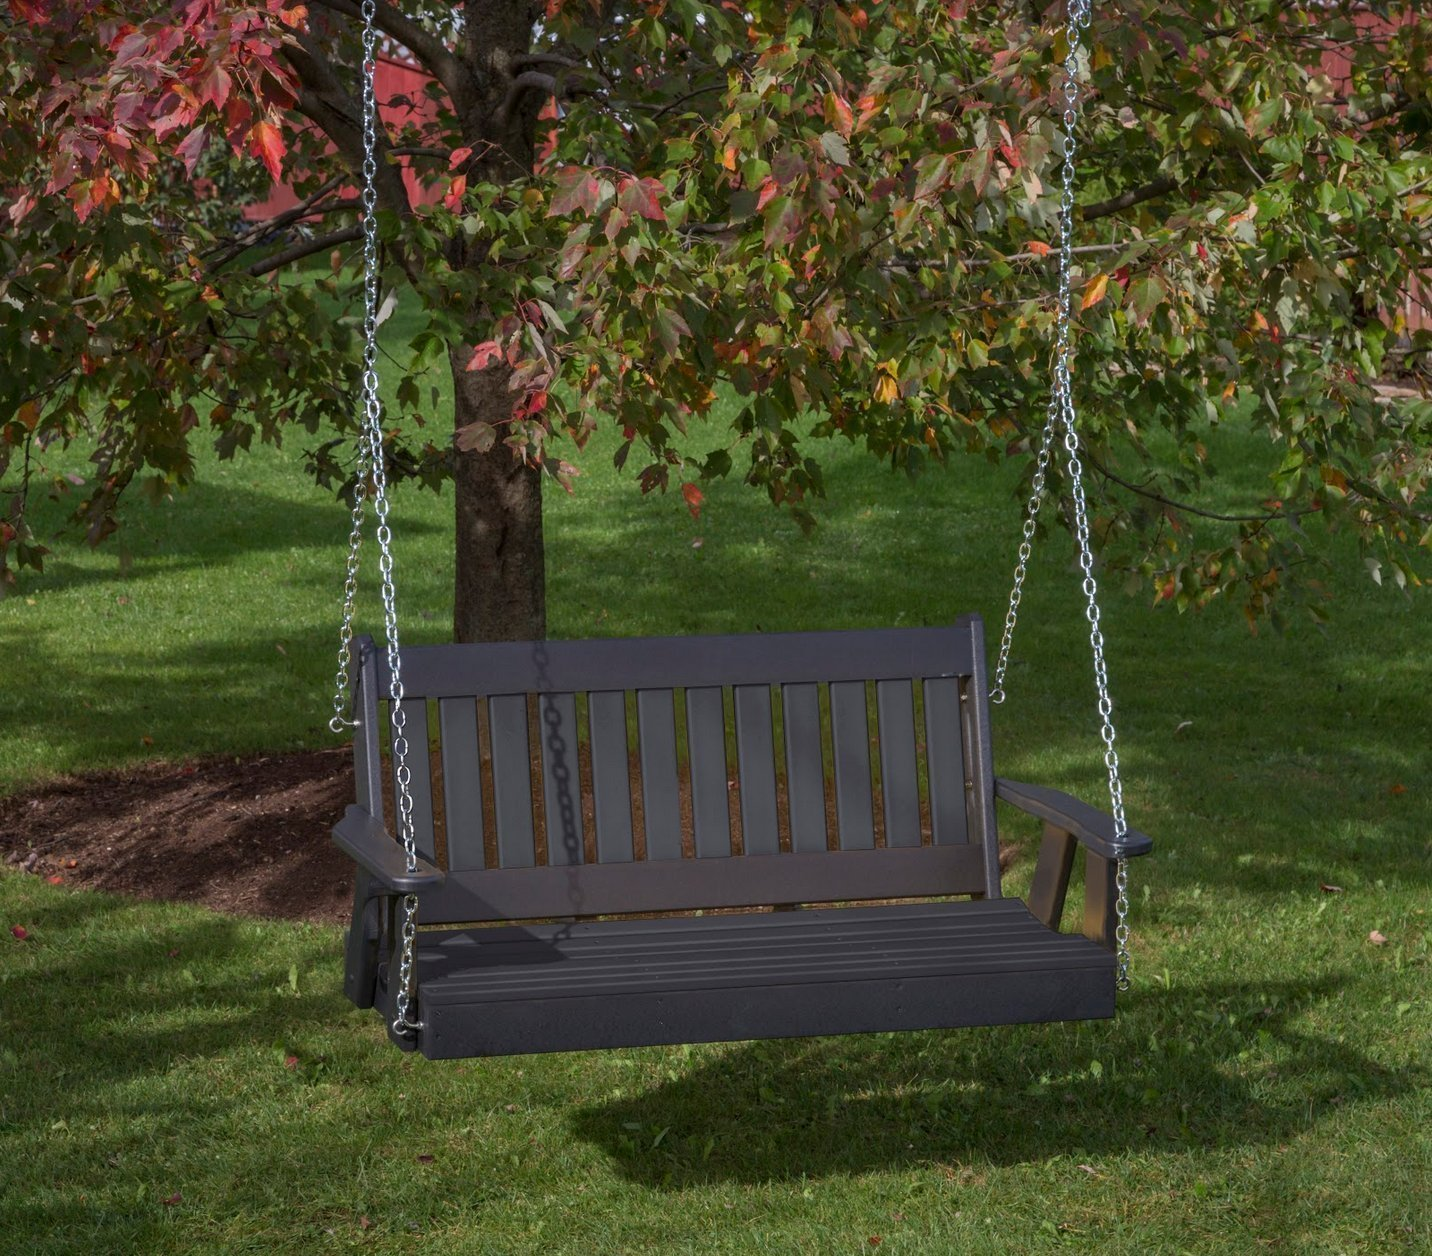 5FT-BLACK-POLY LUMBER Mission Porch Swing Heavy Duty EVERLASTING PolyTuf HDPE - MADE IN USA - AMISH CRAFTED